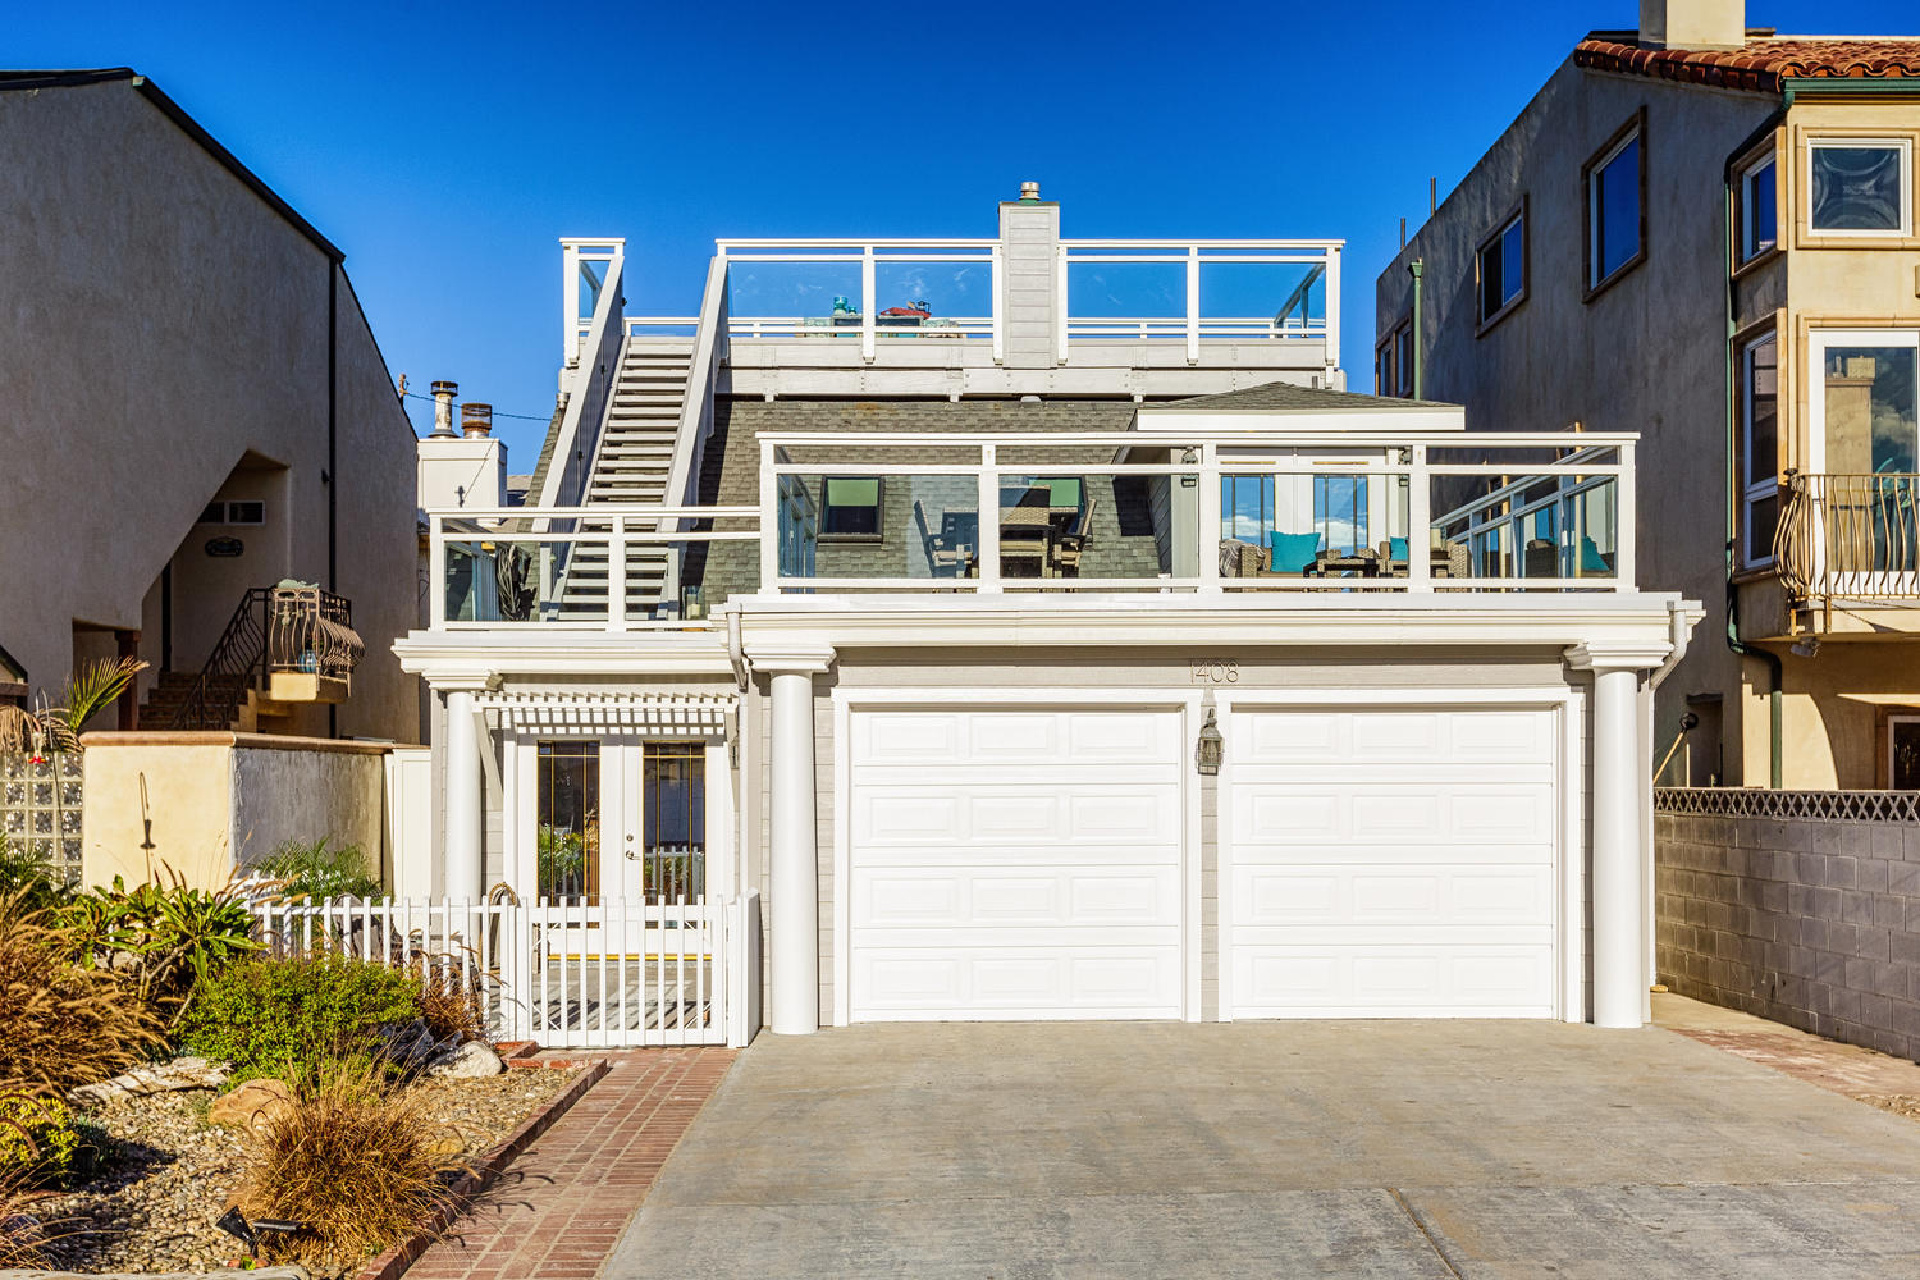 http://www.addressrealestate.com/media/images/blogs/38/2/b_28-1408-ocean-dr-oxnard-ca-93035-mls-size-025-24-front-of-home-1500x1000-72dpi.jpg